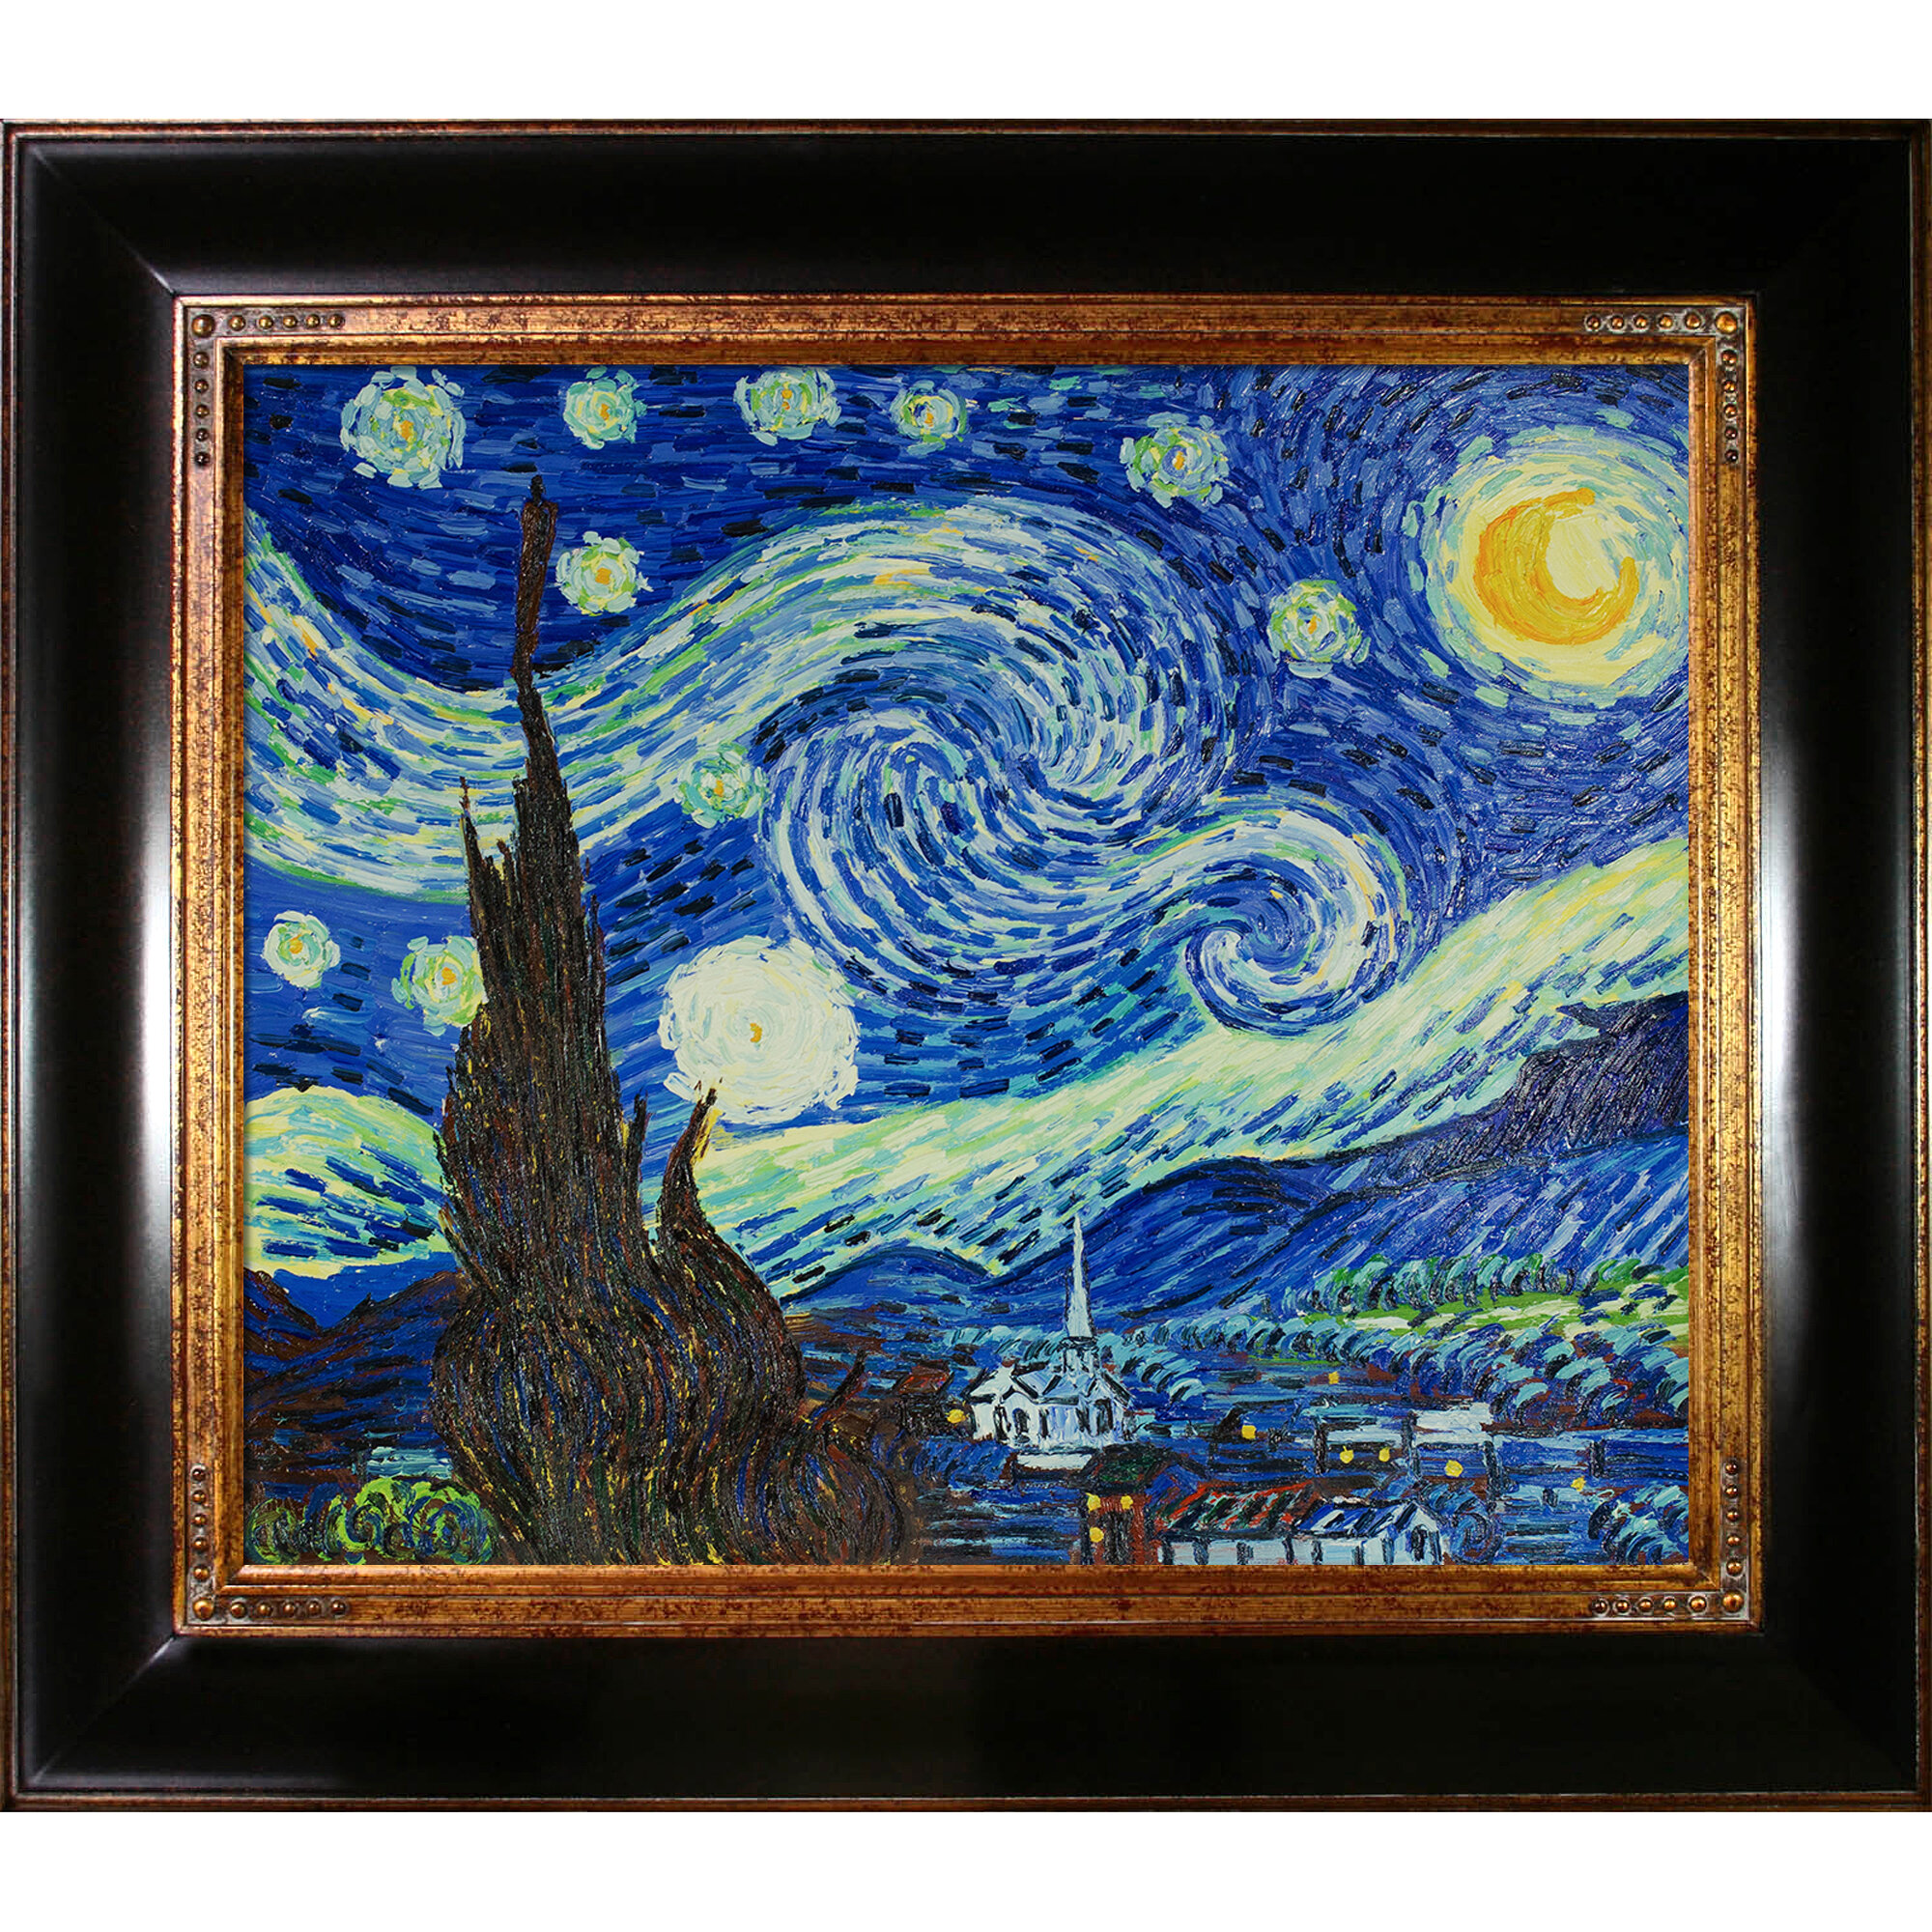 Wildon Home ® Starry Night by Vincent Van Gogh Framed Painting | Wayfair